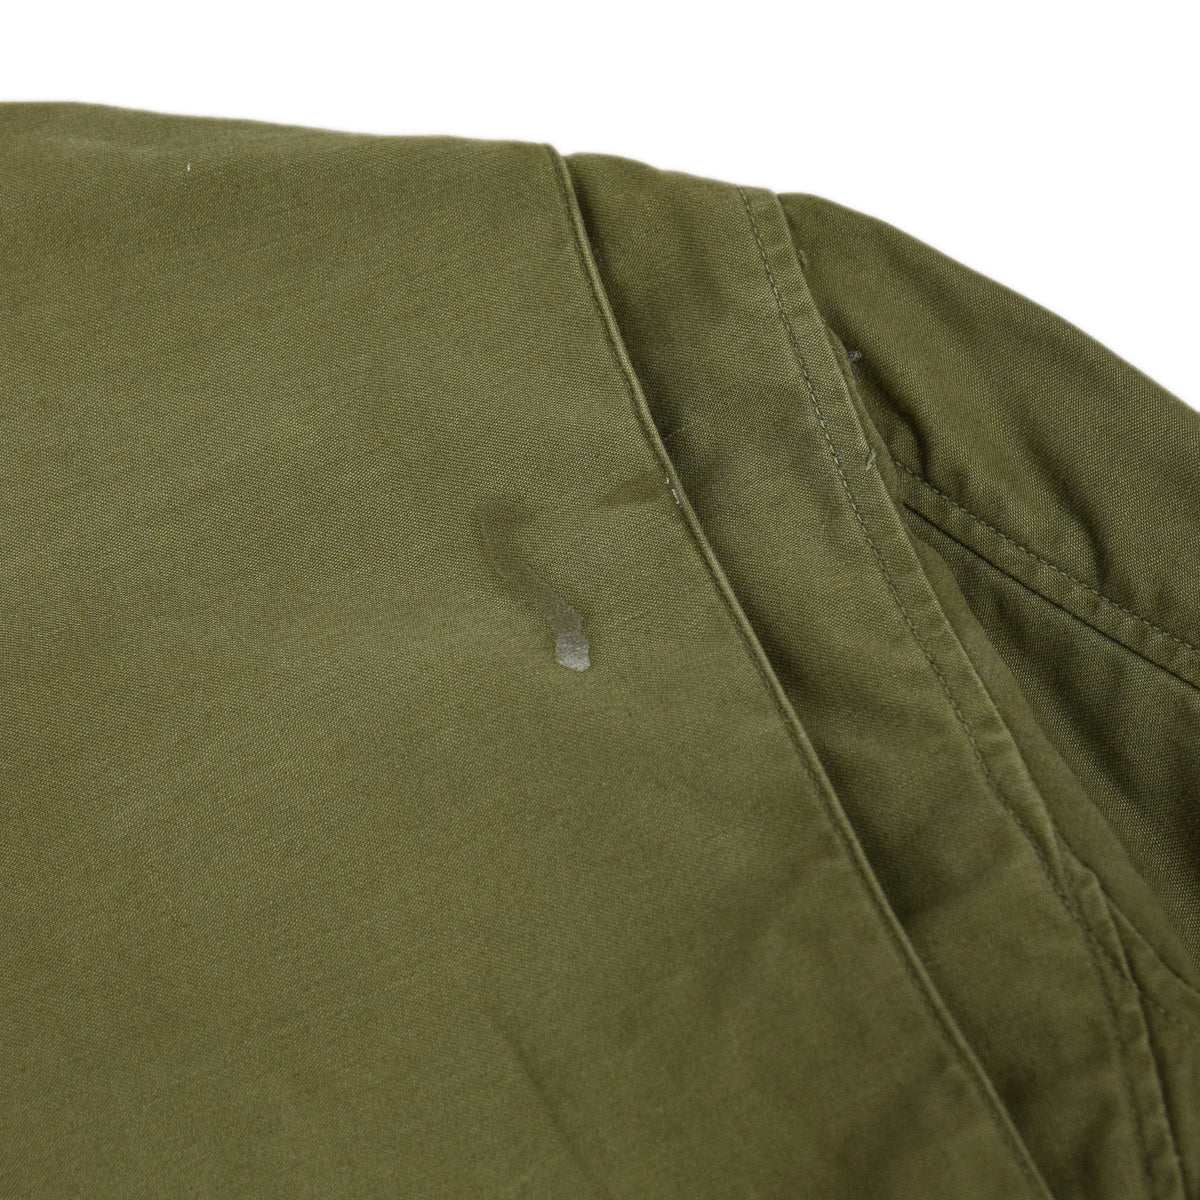 Vintage 60s Vietnam M-65 Man's Field Sateen 0G-107 Green US Army Coat S / M shoulder details